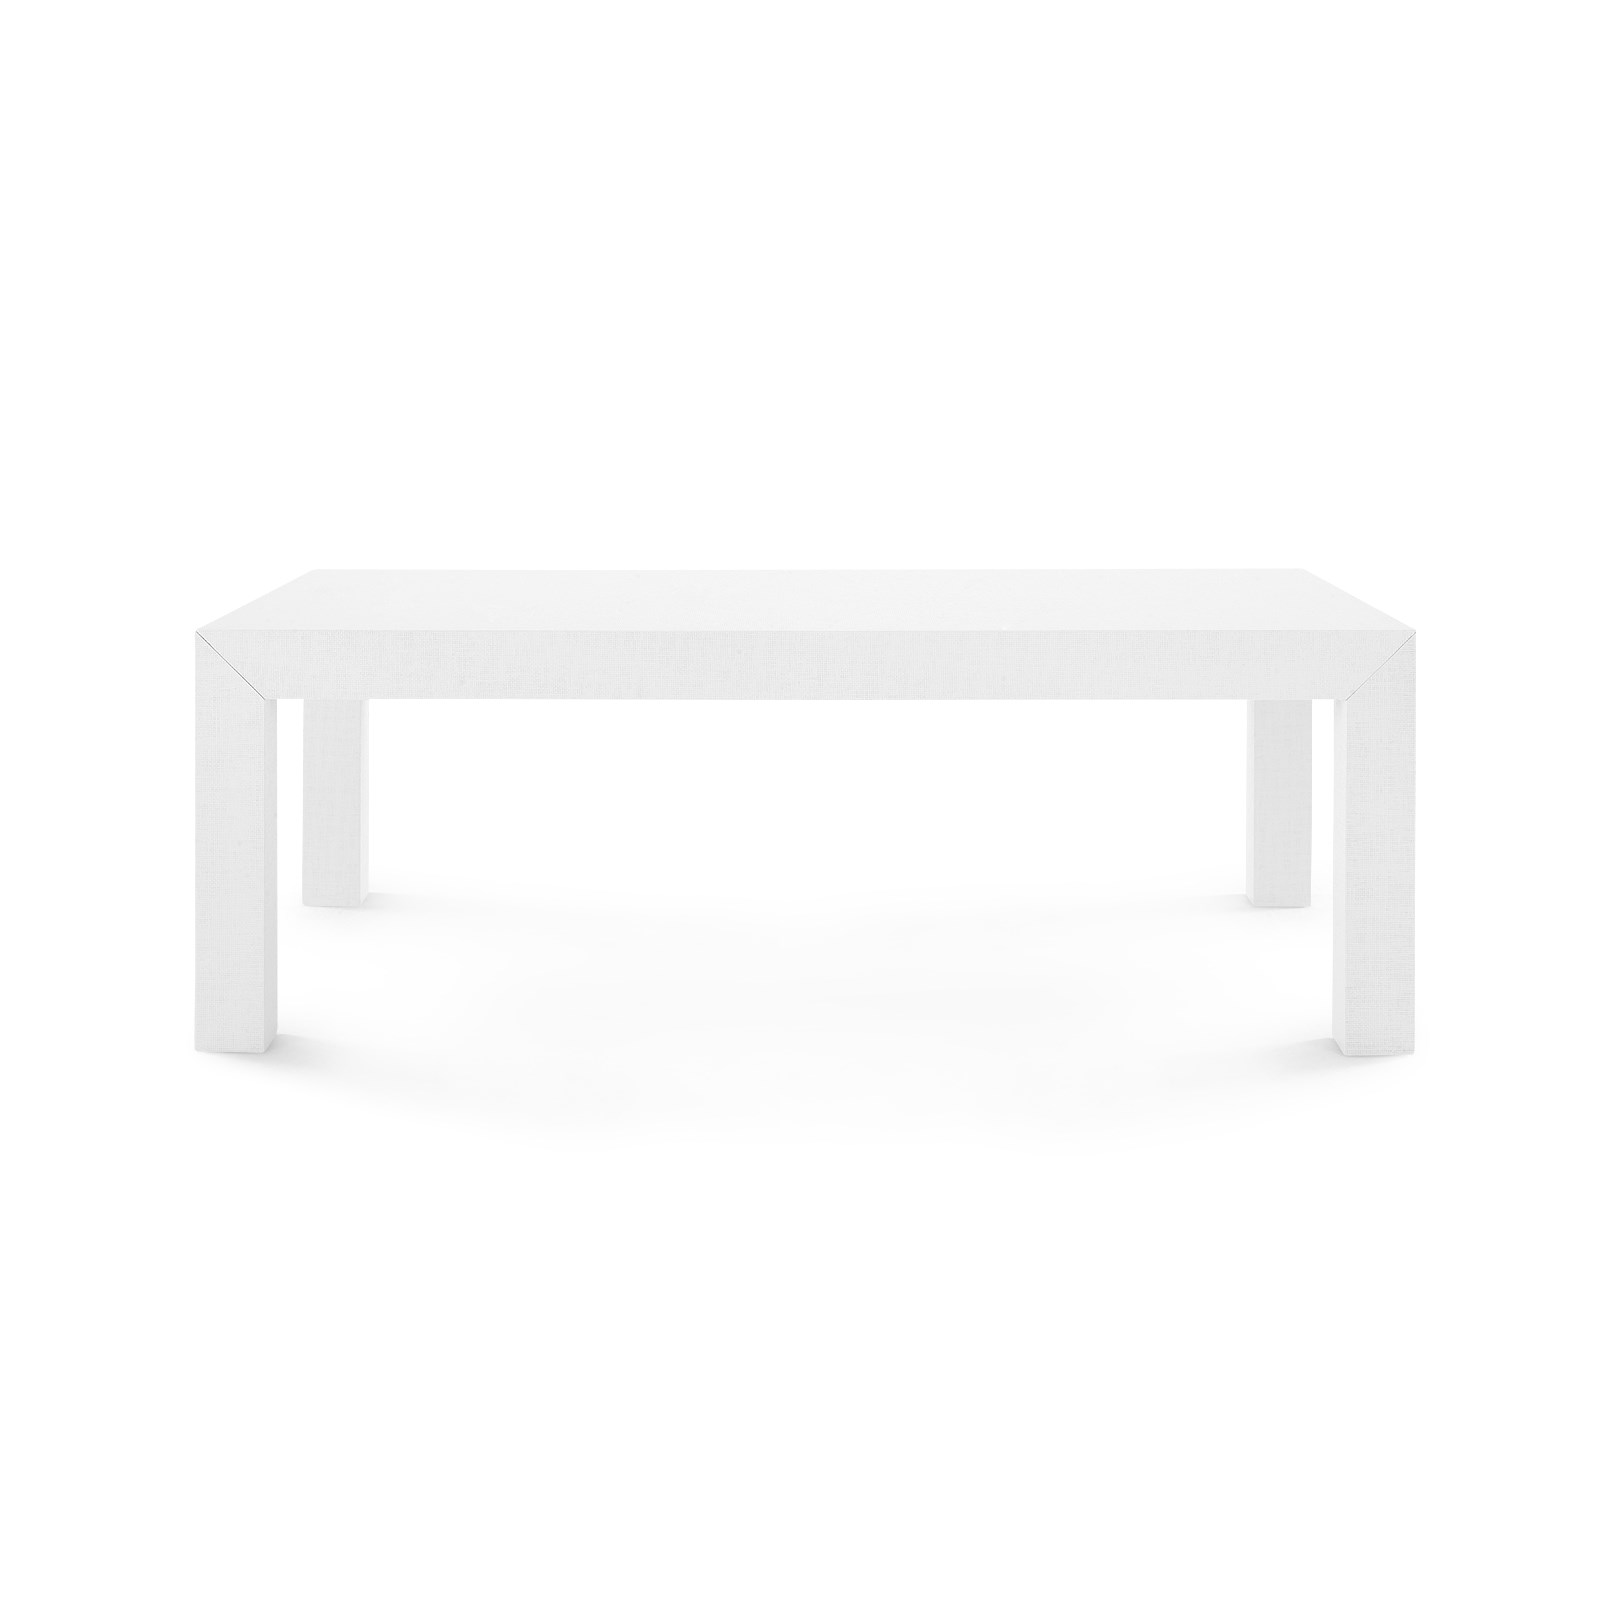 Parson coffee table in navy blue bungalow 5 - Parsons Coffee Table White